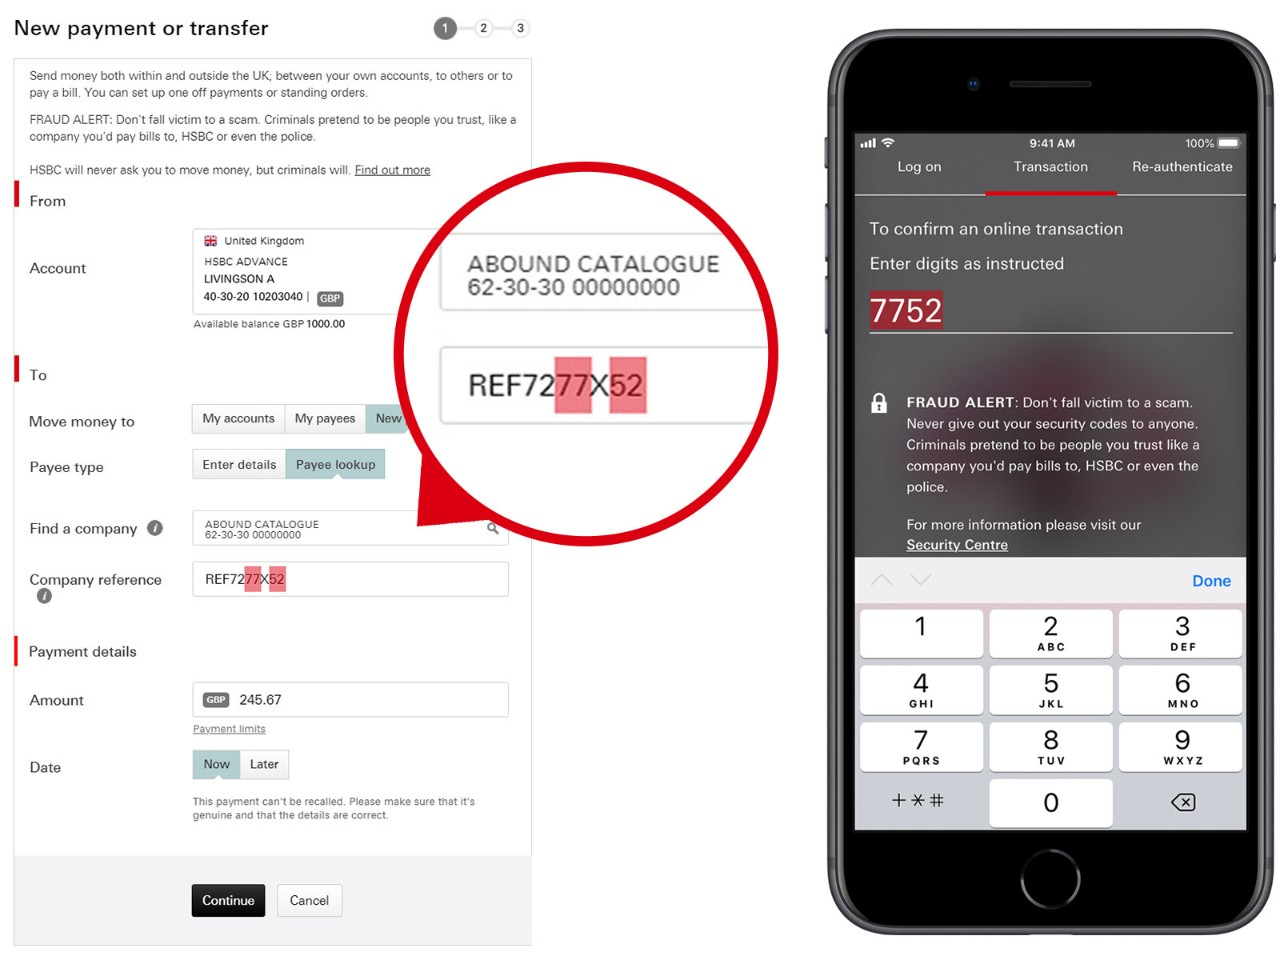 Making Payments | Contact and Support - HSBC UK